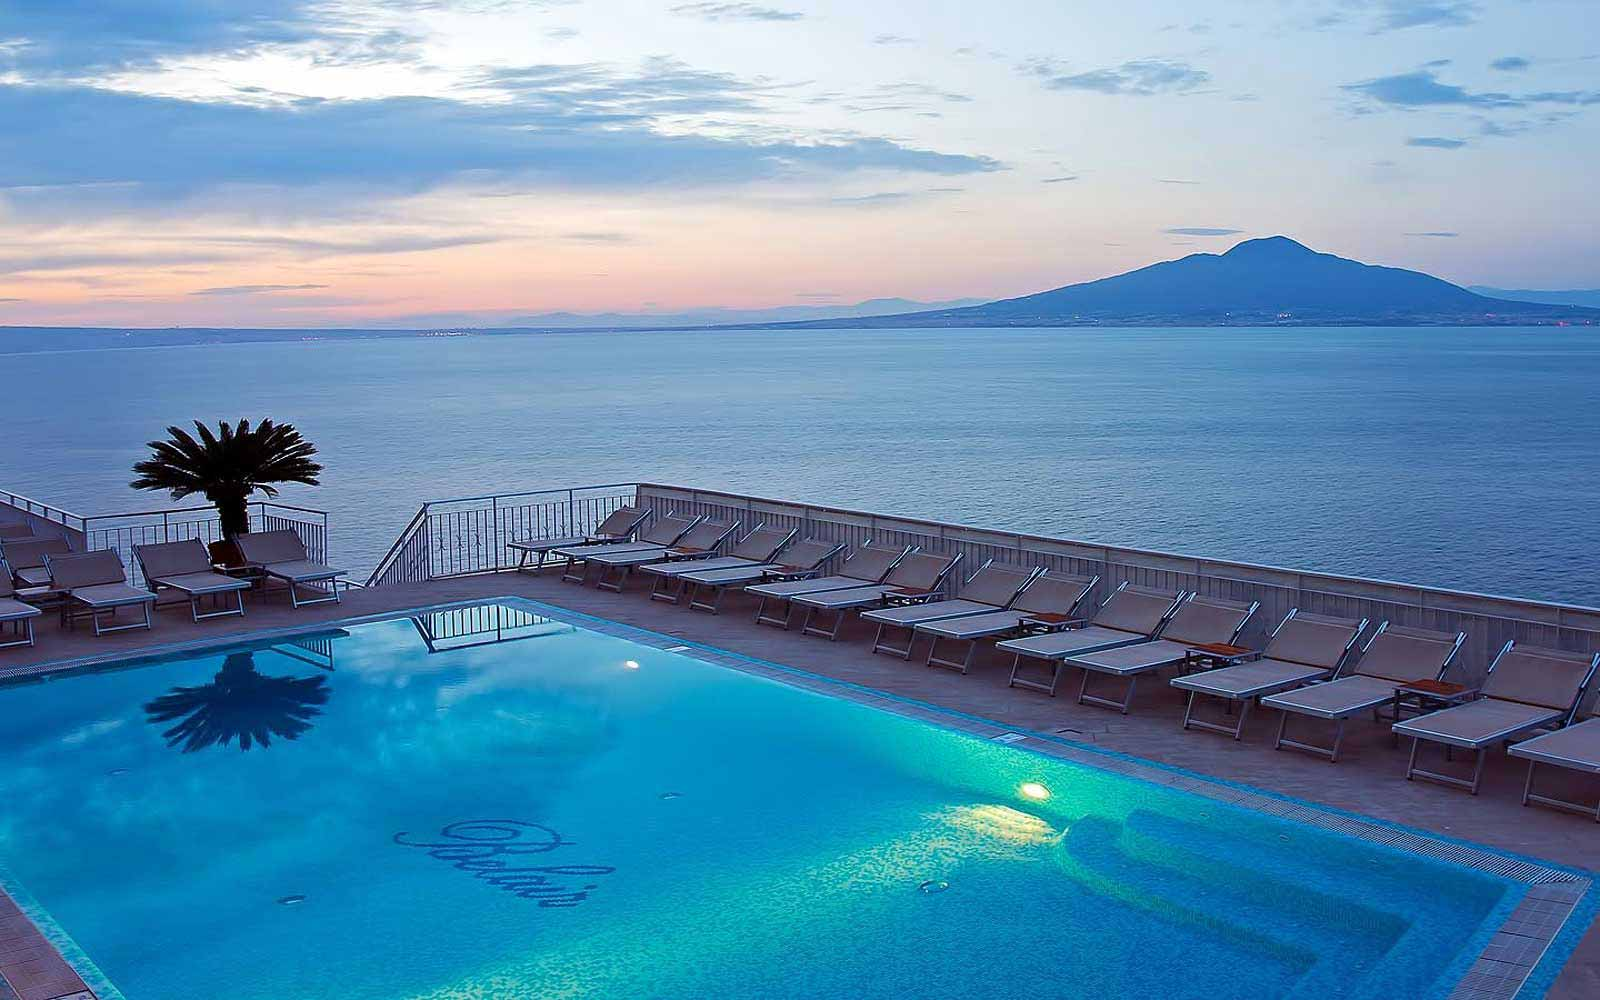 Swimming pool at Hotel Belair with Mount Vesuvius